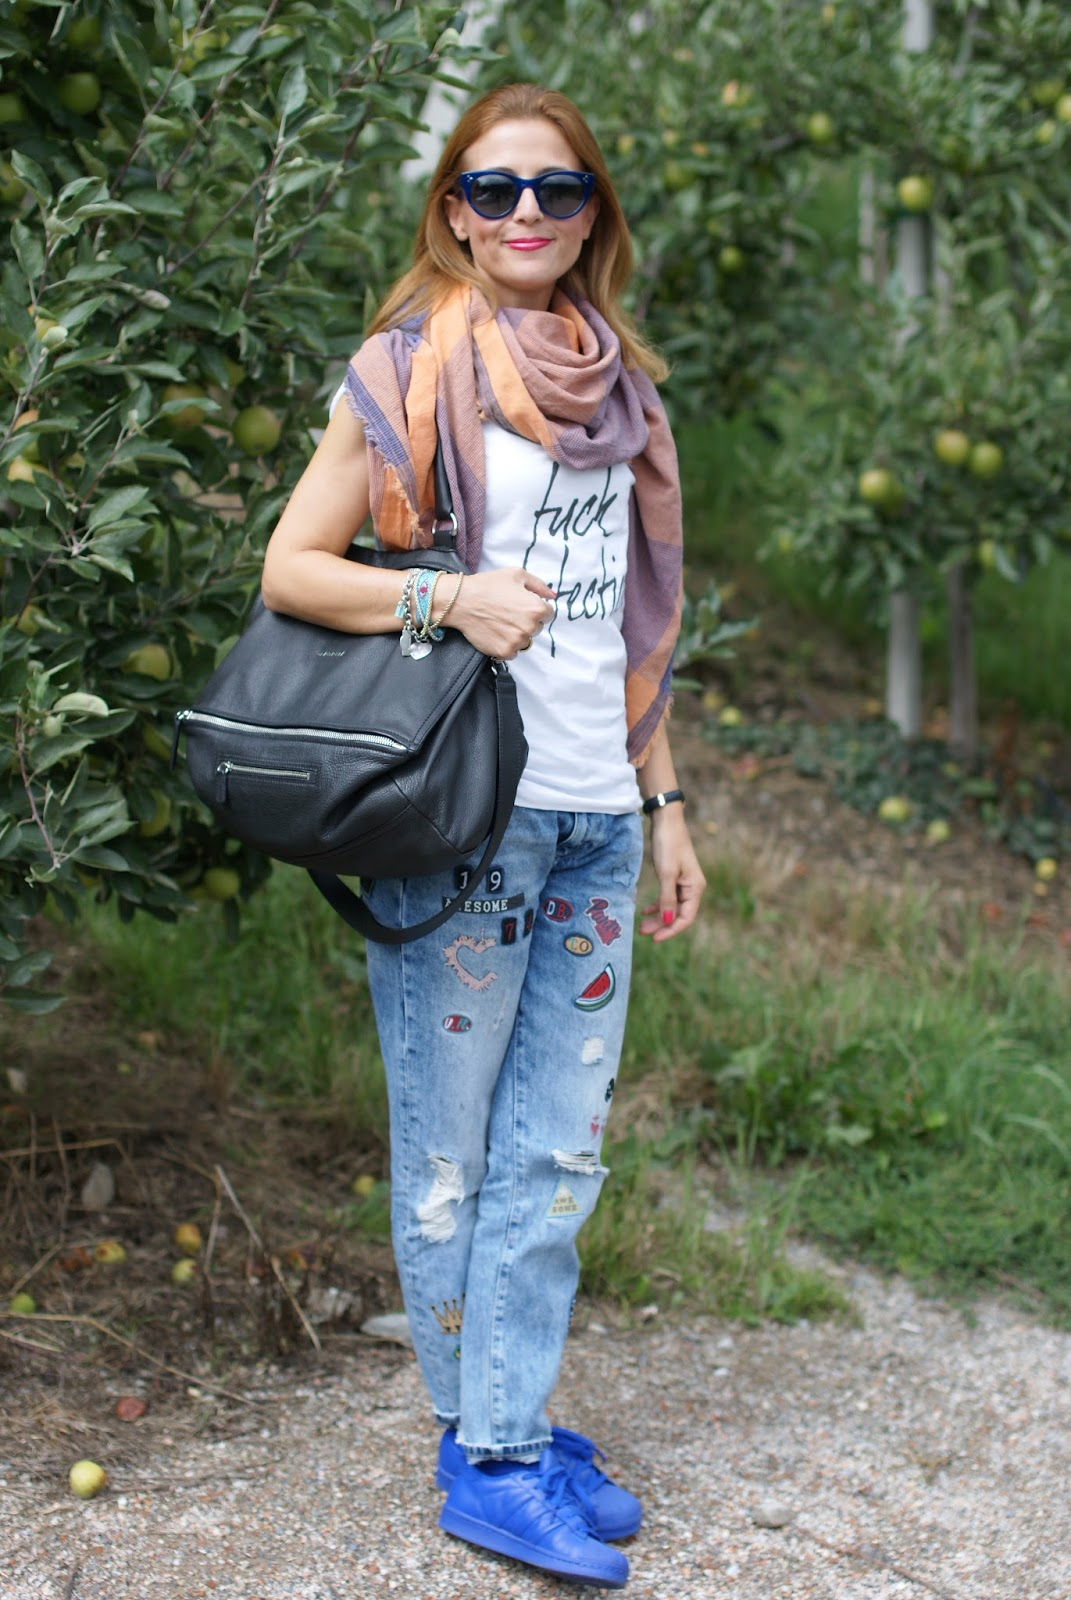 Fuck perfection, a rebel fashion outfit with my adidas supercolor blue, Givenchy Pandora bag and patchy jeans on Fashion and Cookies fashion blog, fashion blogger style